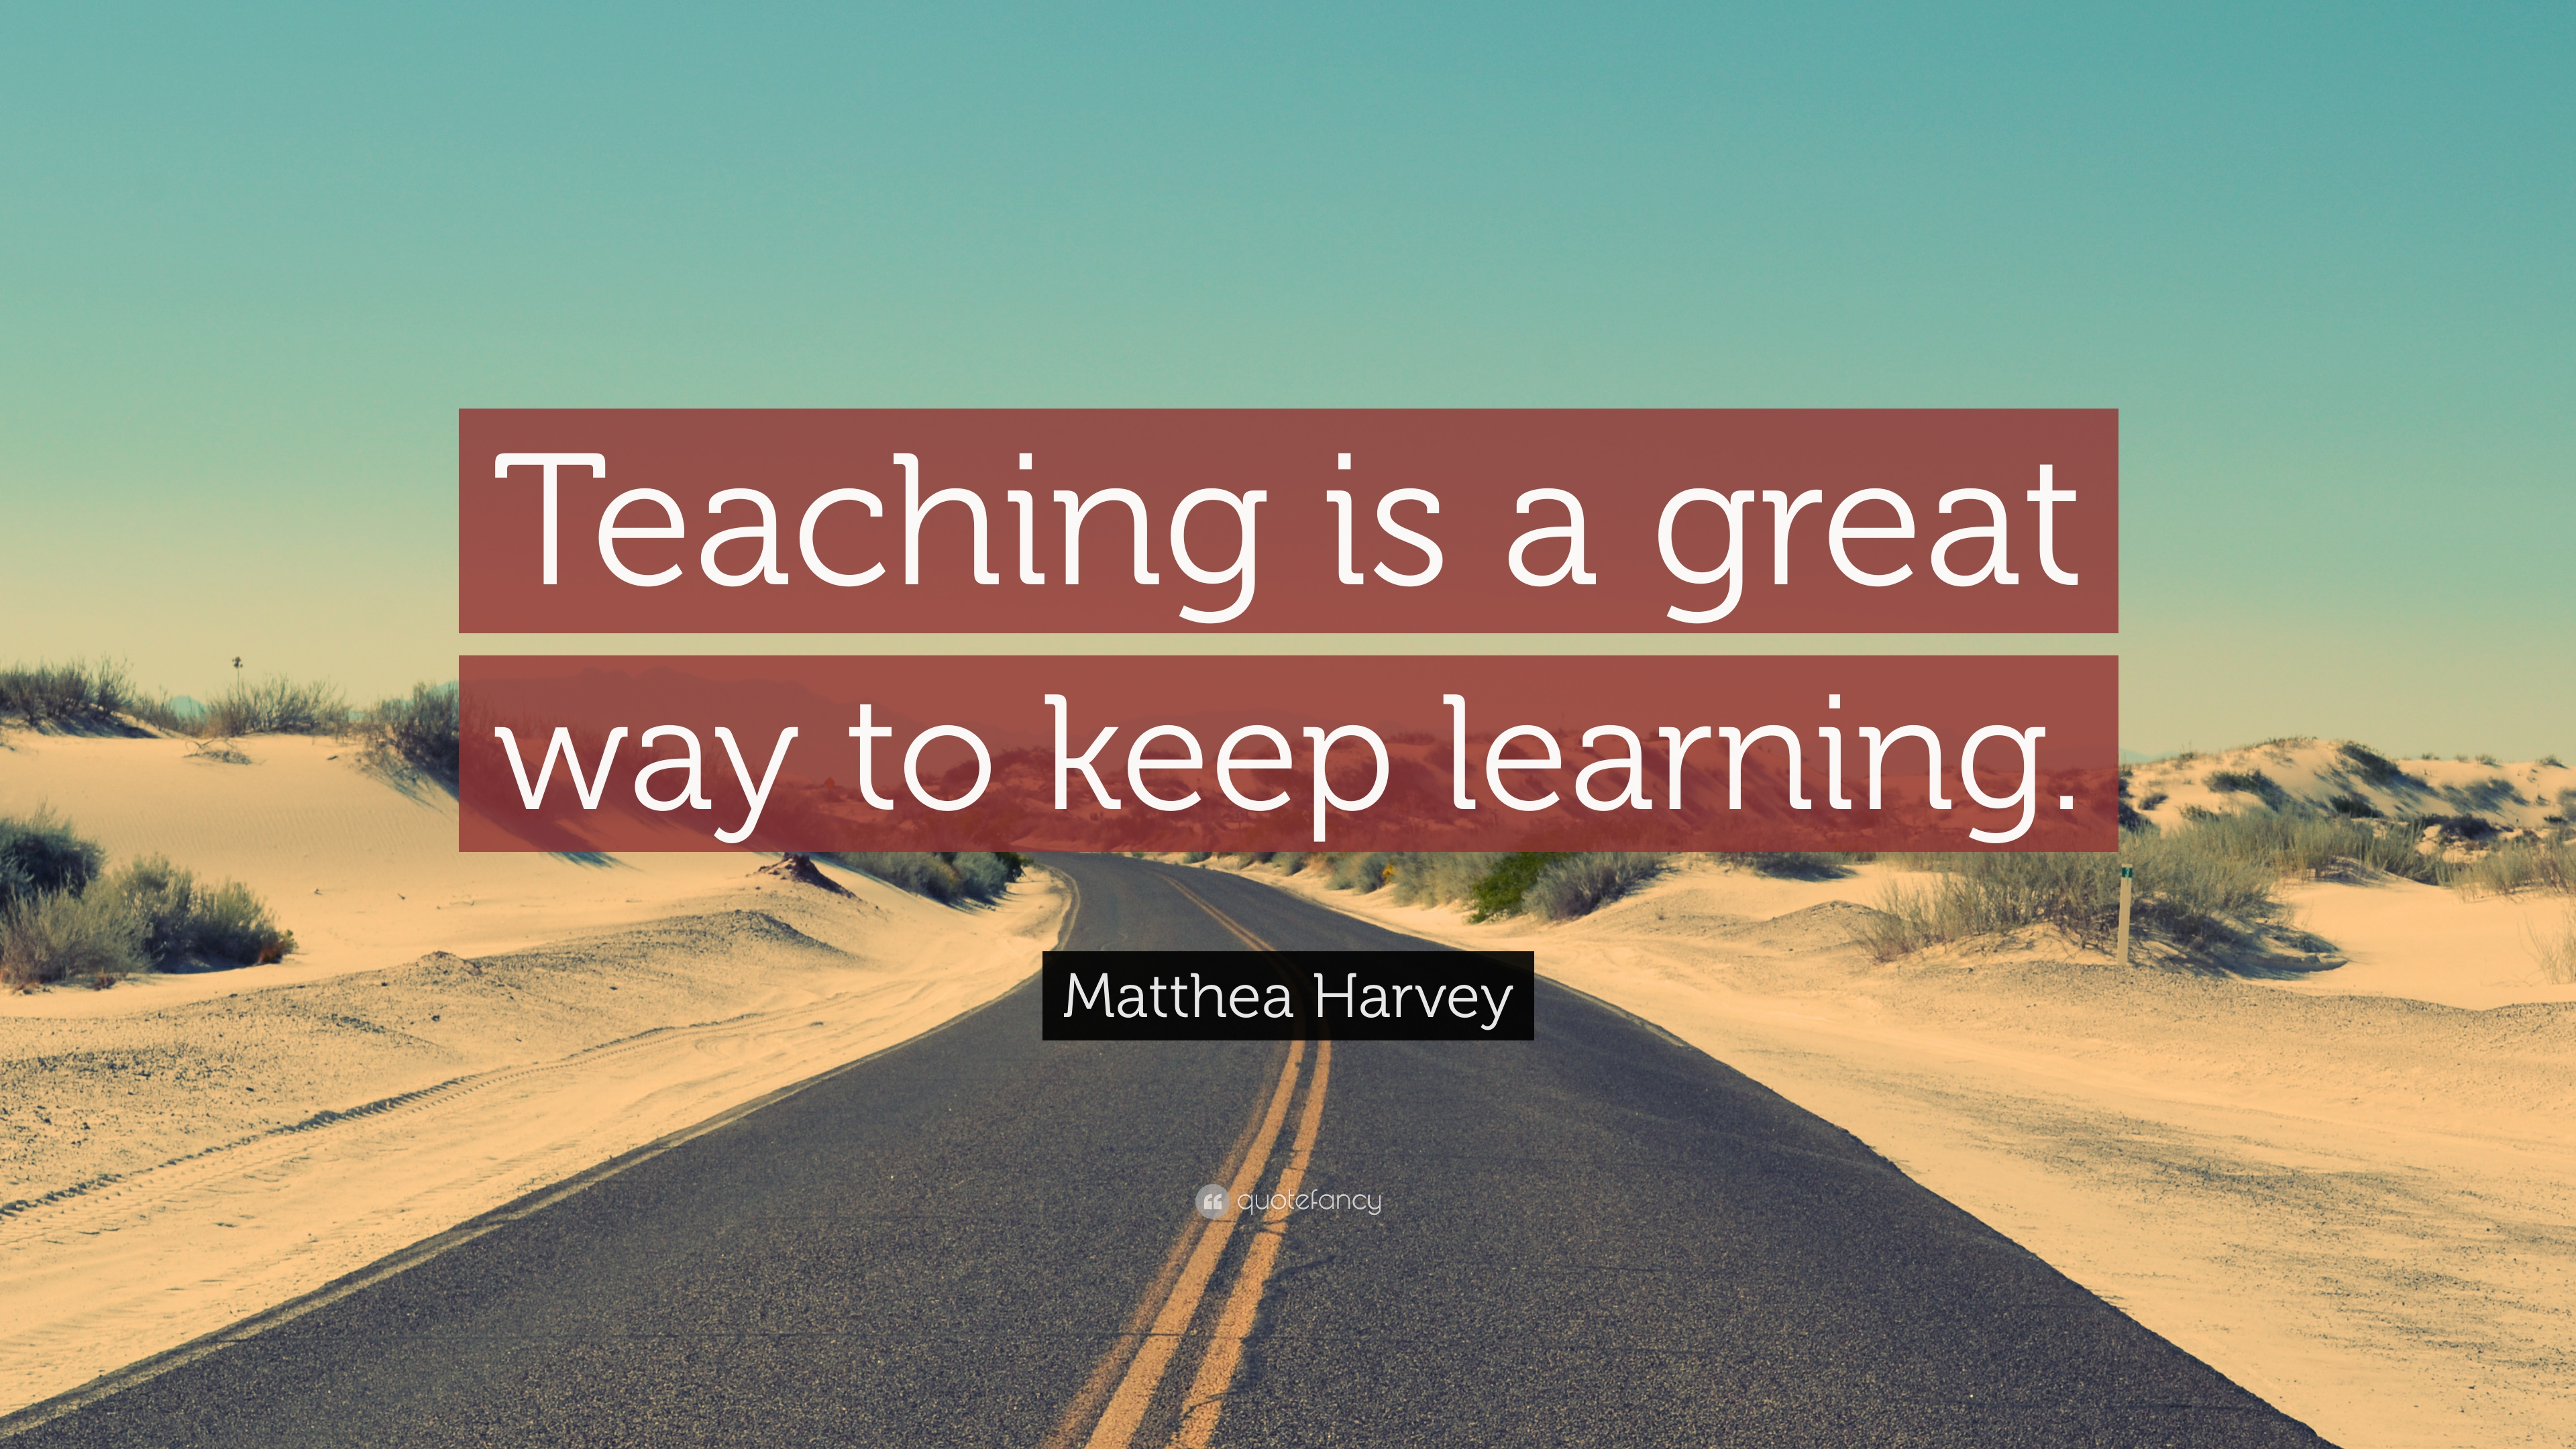 Matthea Harvey Quote: Teaching is a great way to keep